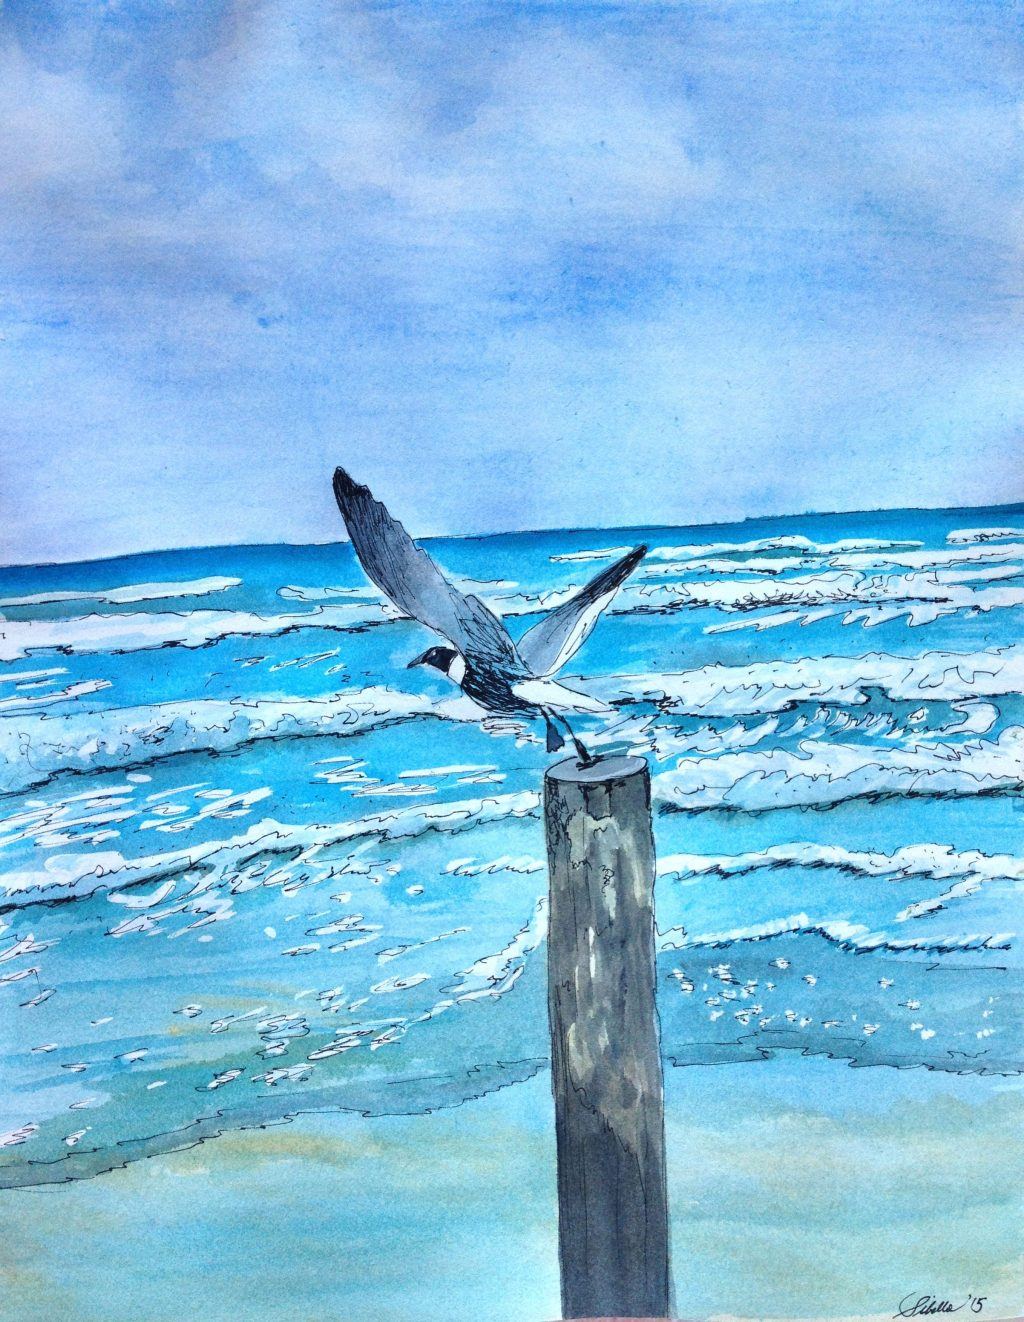 Doodlewash and watercolor painting by Sibella of bird flying out to the ocean from a post on the beach